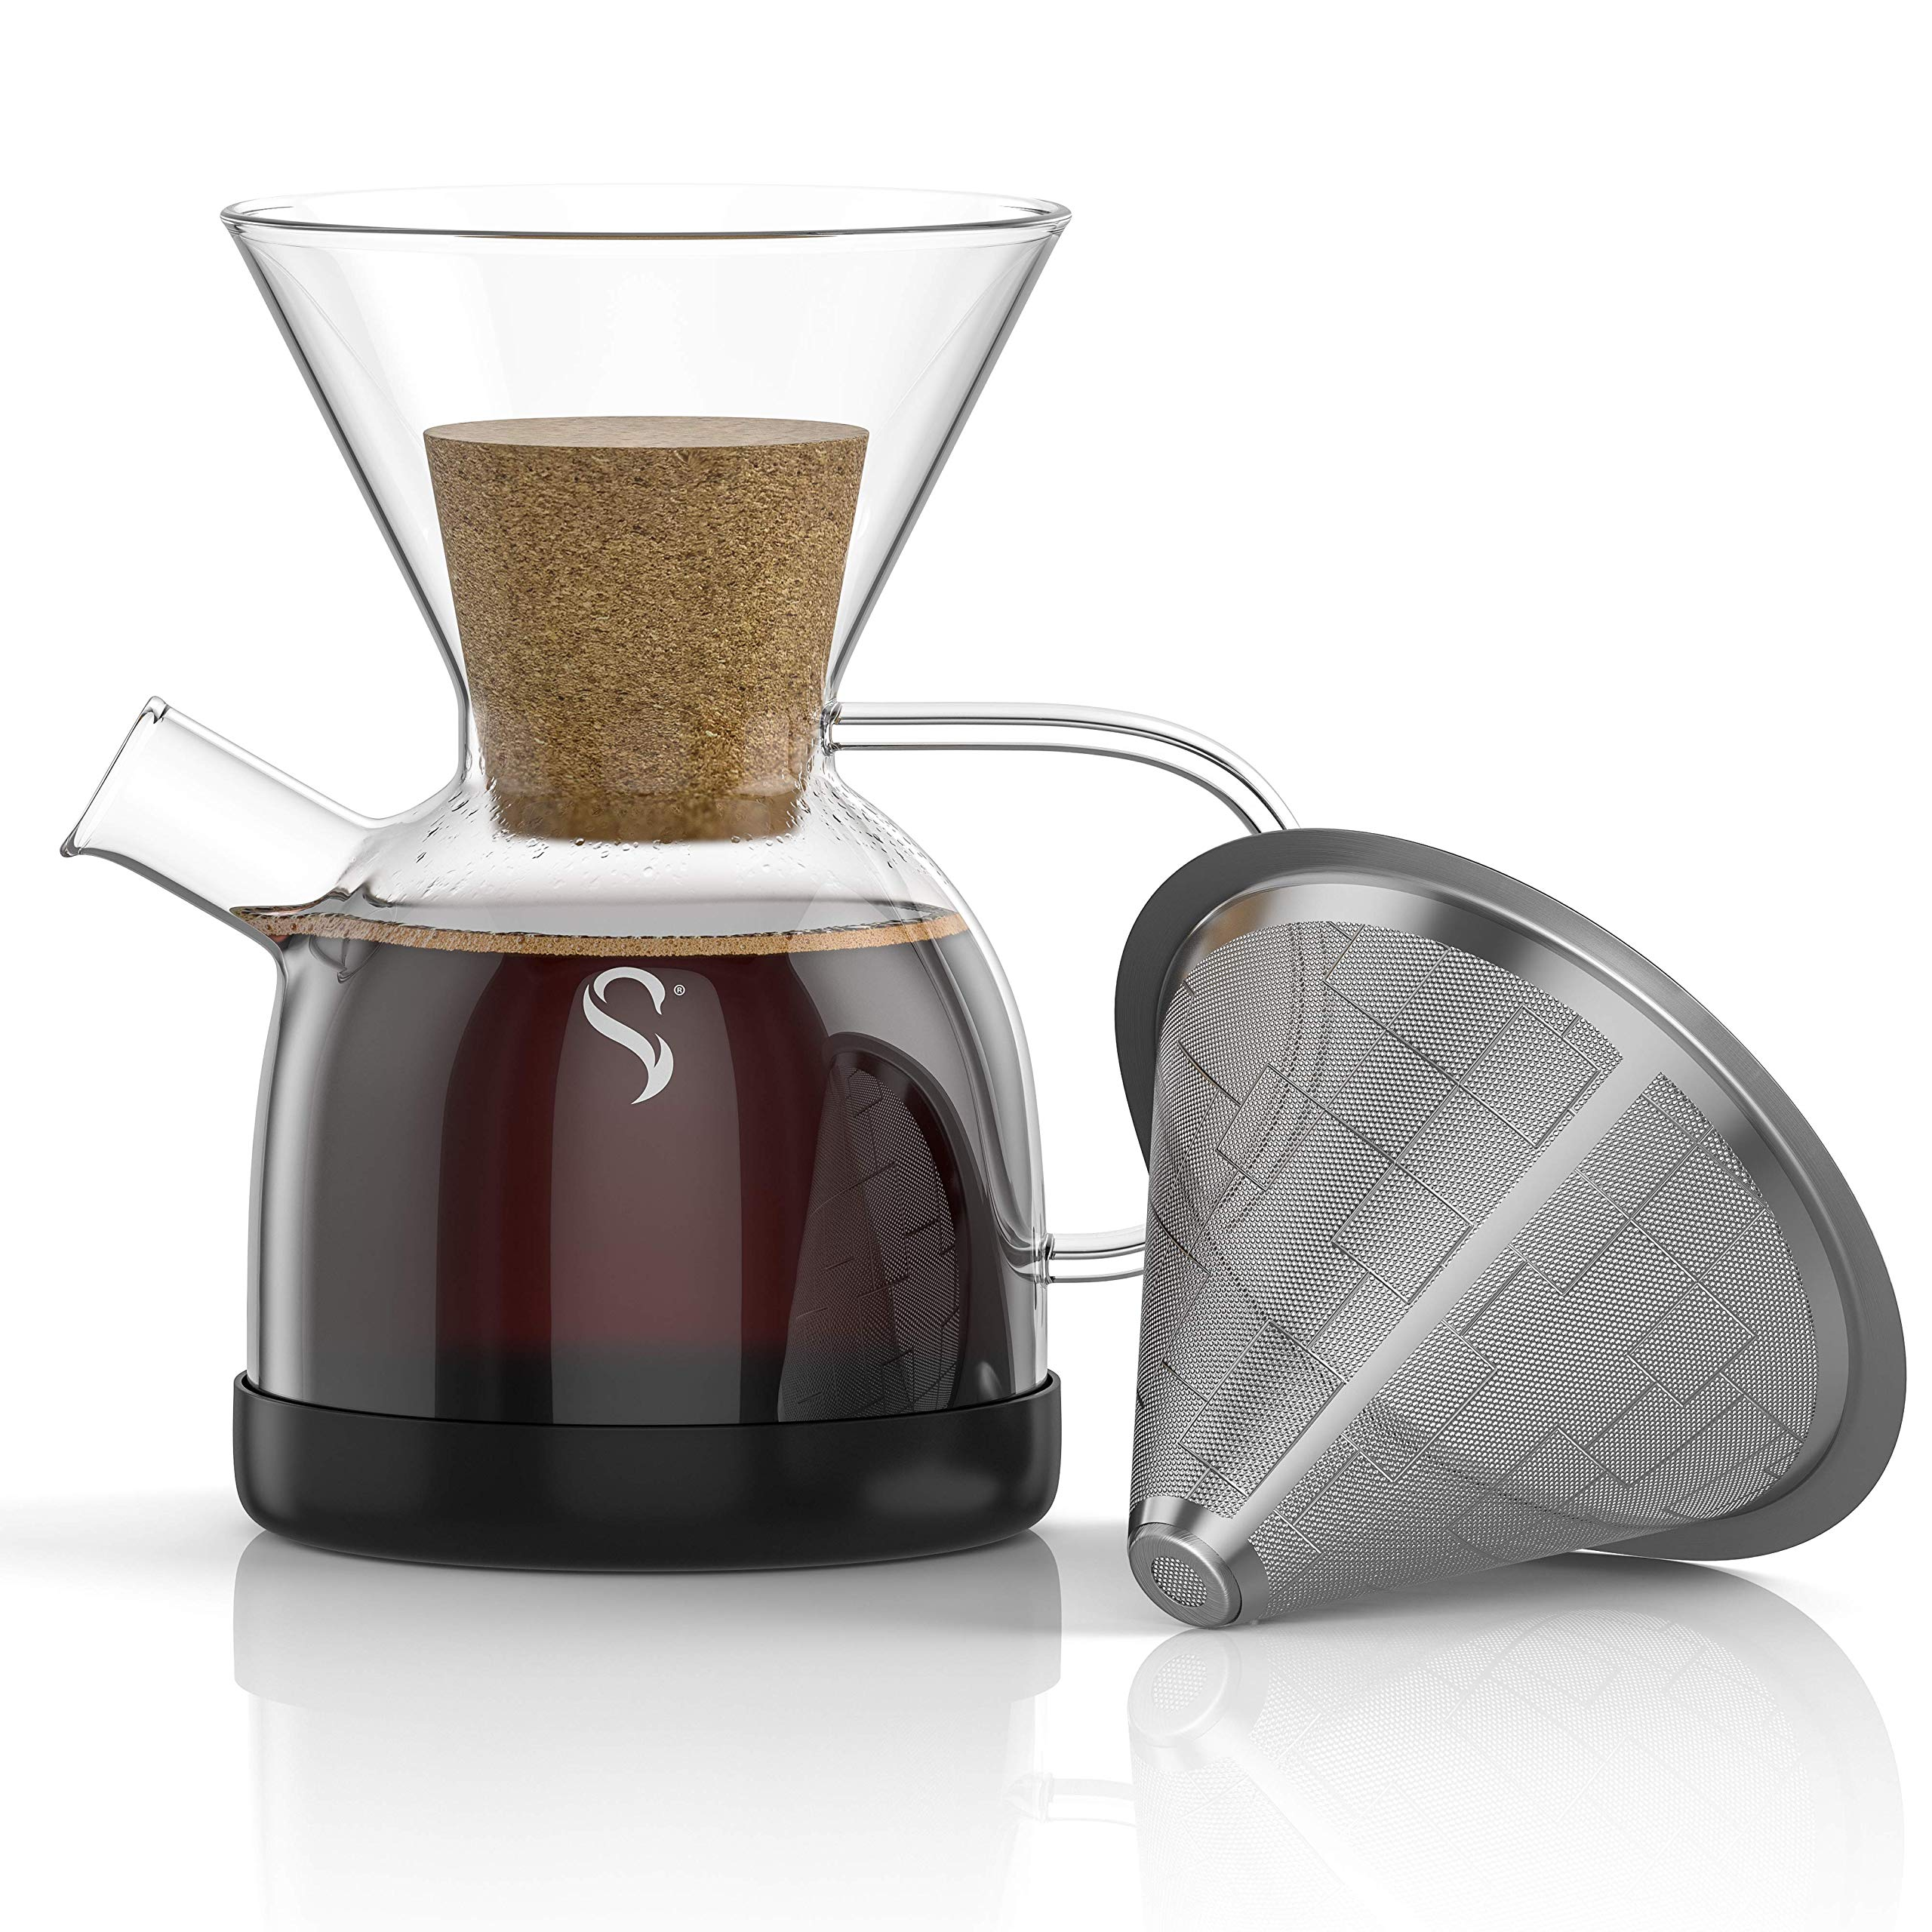 Shanik Pour Over Coffee Maker with Handle - Borosilicate Glass Coffee Maker - Drop Resistant Silicone Base - Rust Resistant Stainless Steel Paperless Filter/Dripper - 0.5L / 17oz